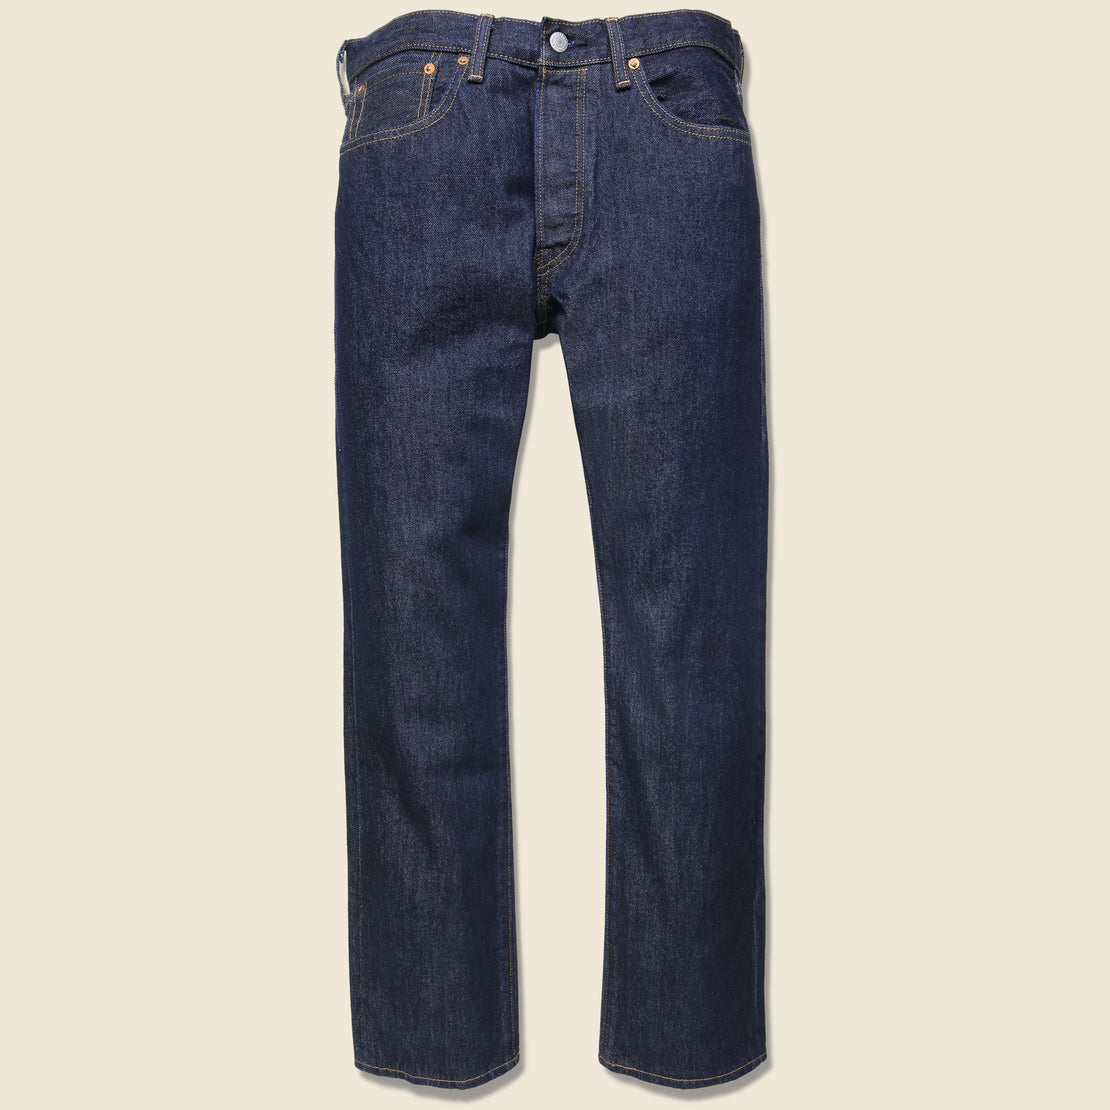 Levis Made & Crafted 501 Original Fit Jean - Indigo Rinse